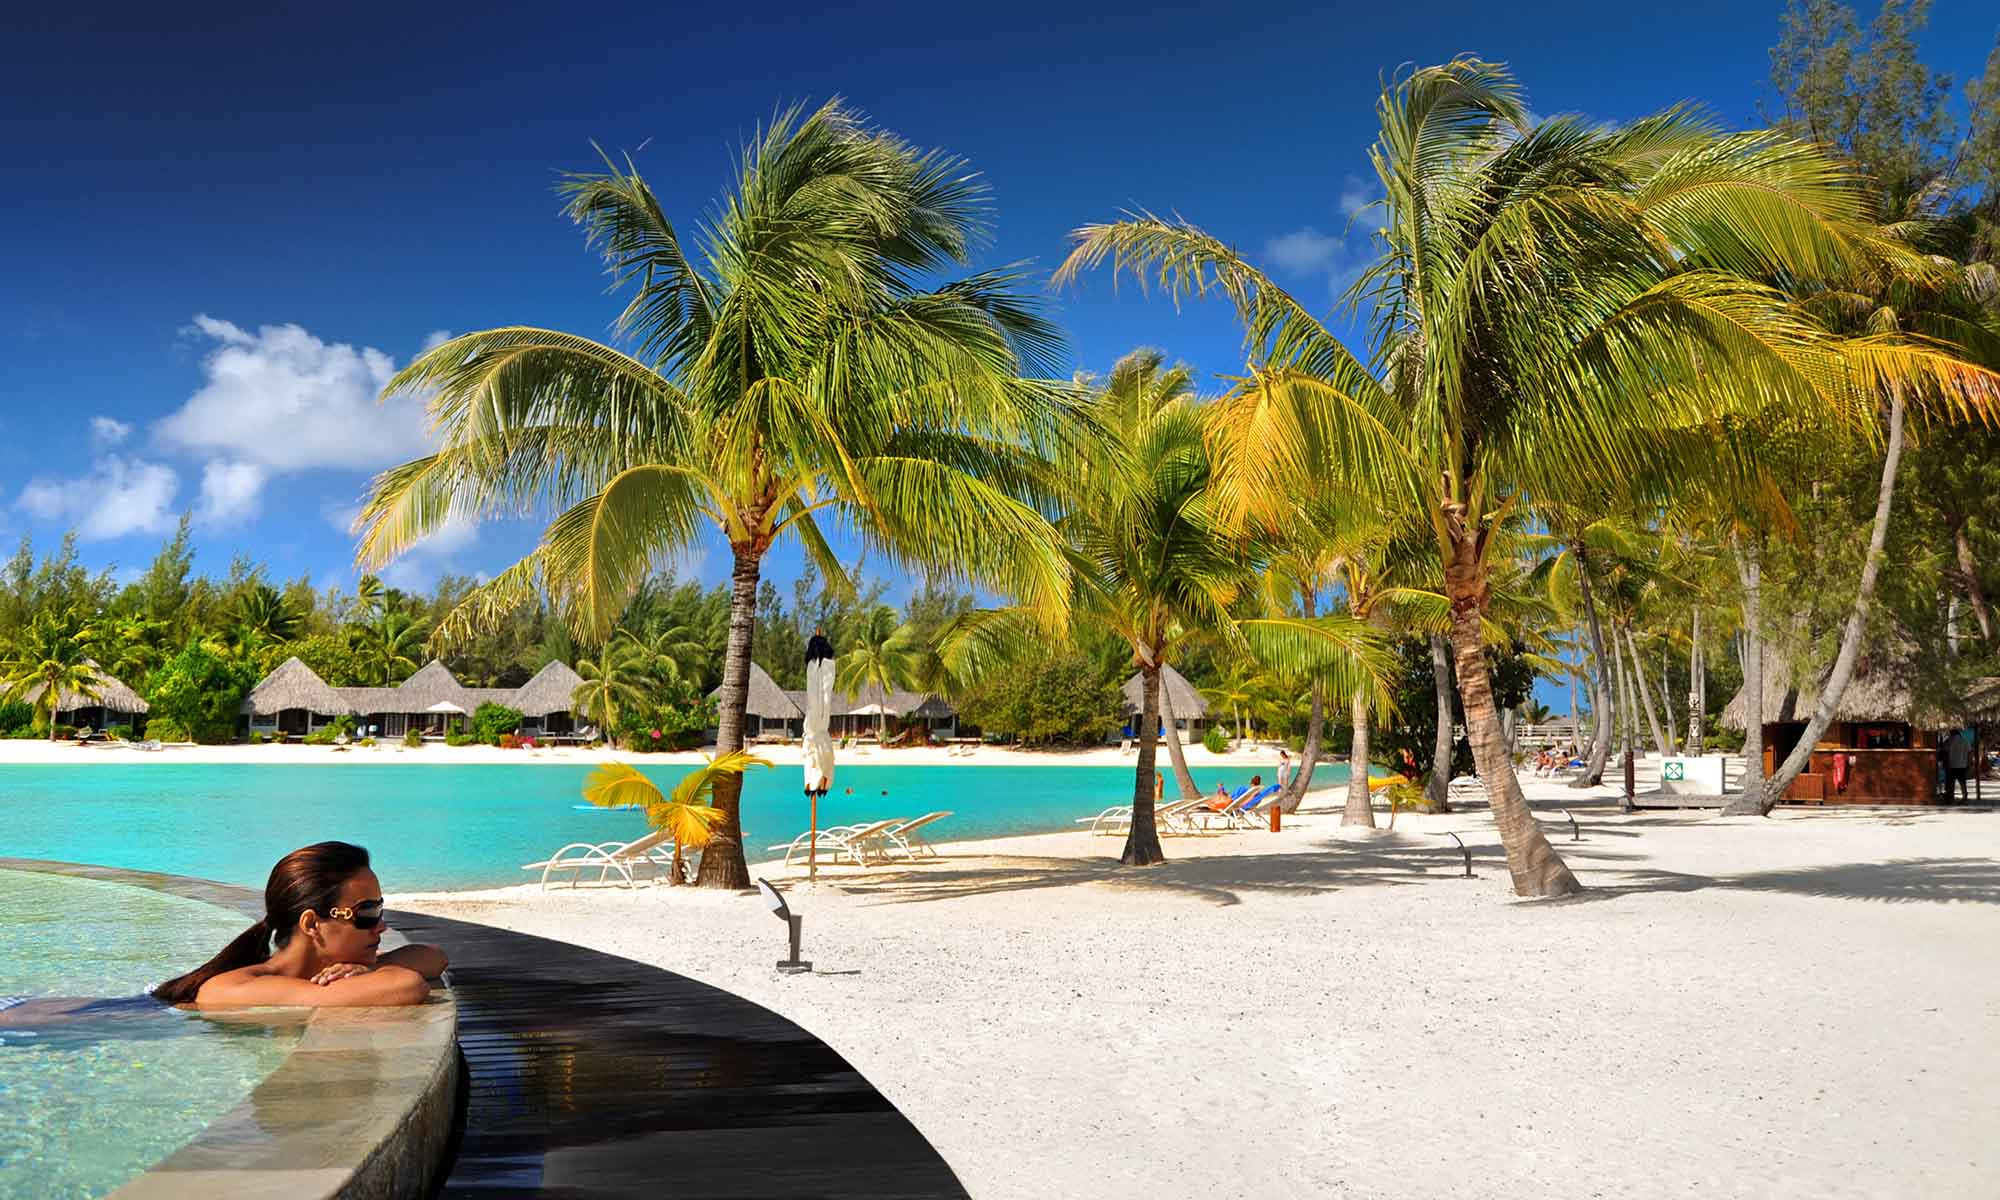 Enjoy Days of Pure Leisure at Le Meridien Bora Bora